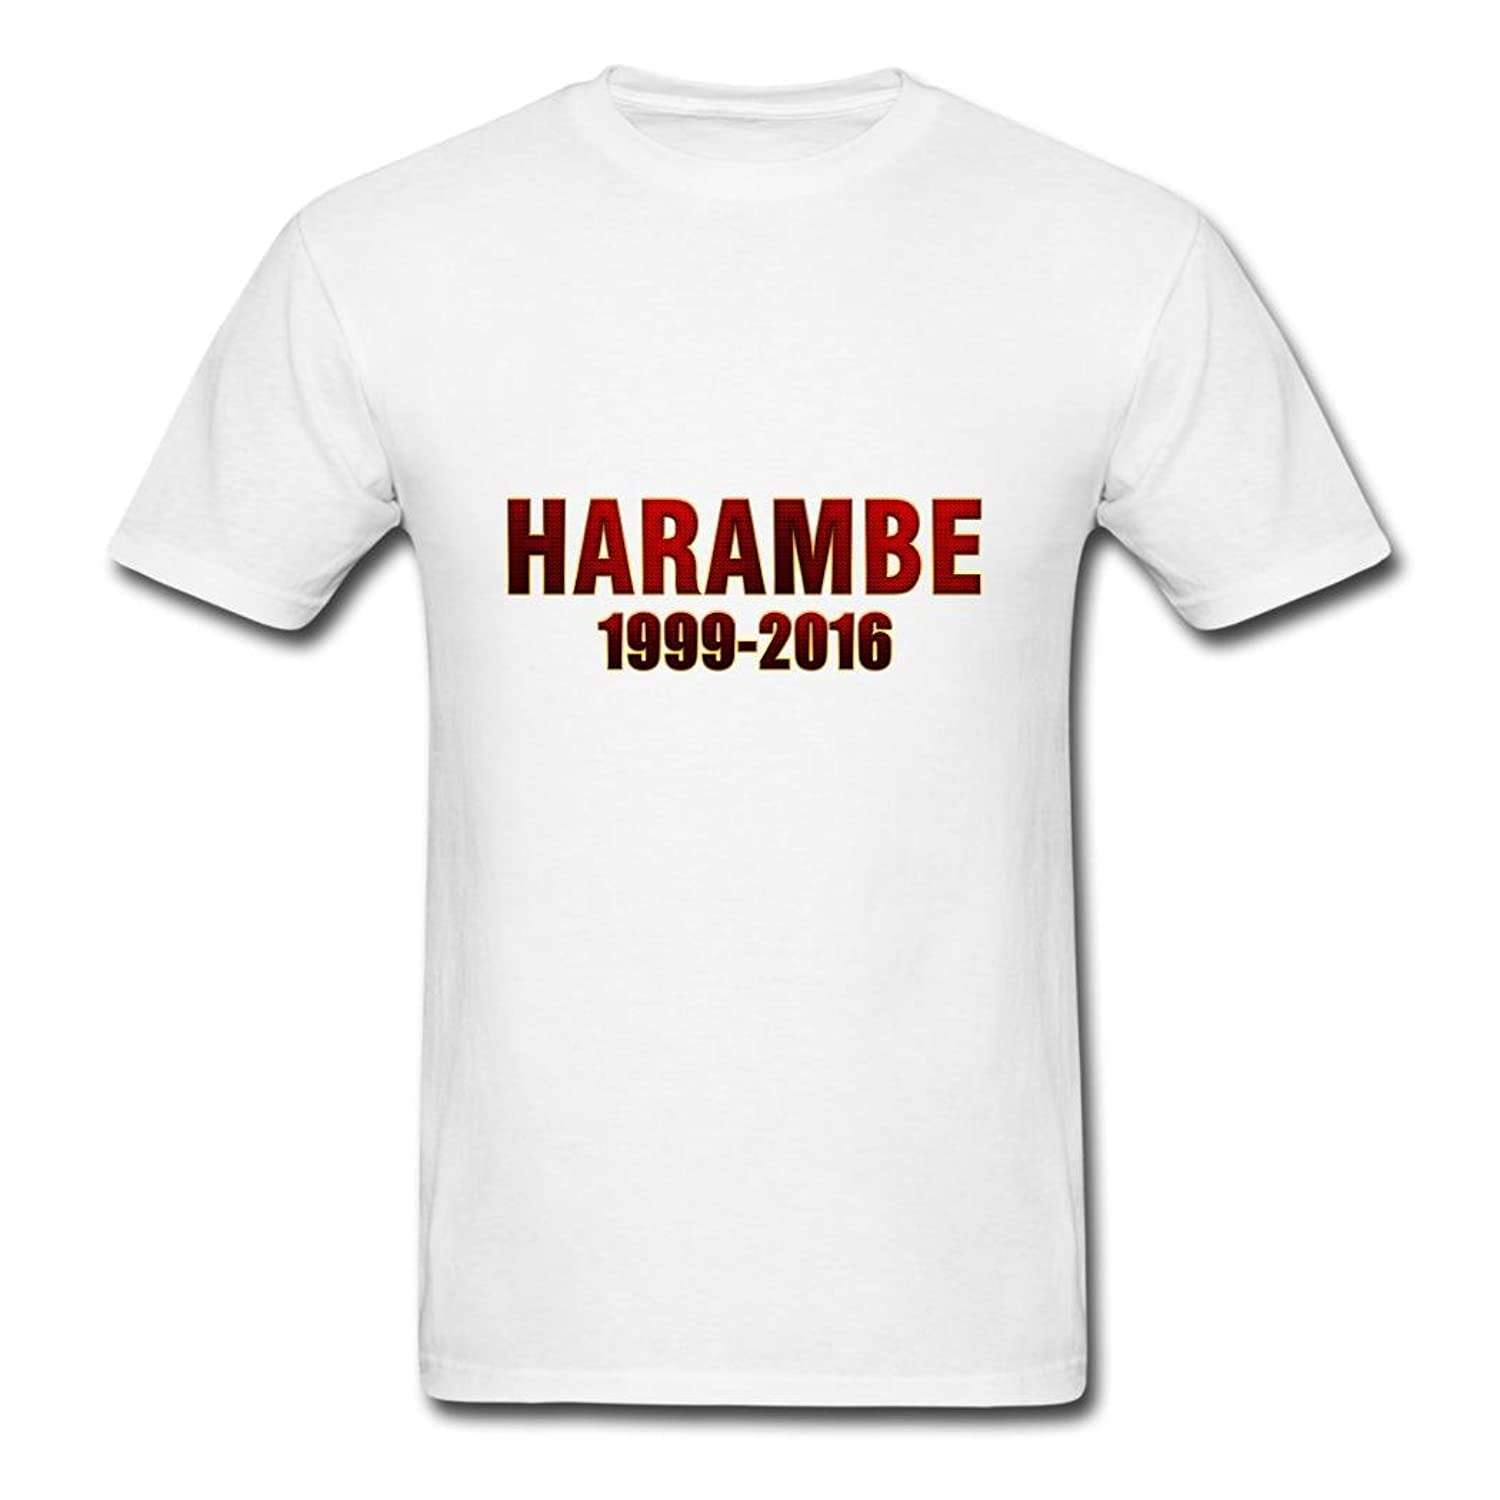 Sia Halk The Harambe 1999-2016 Suitable Male Clothing